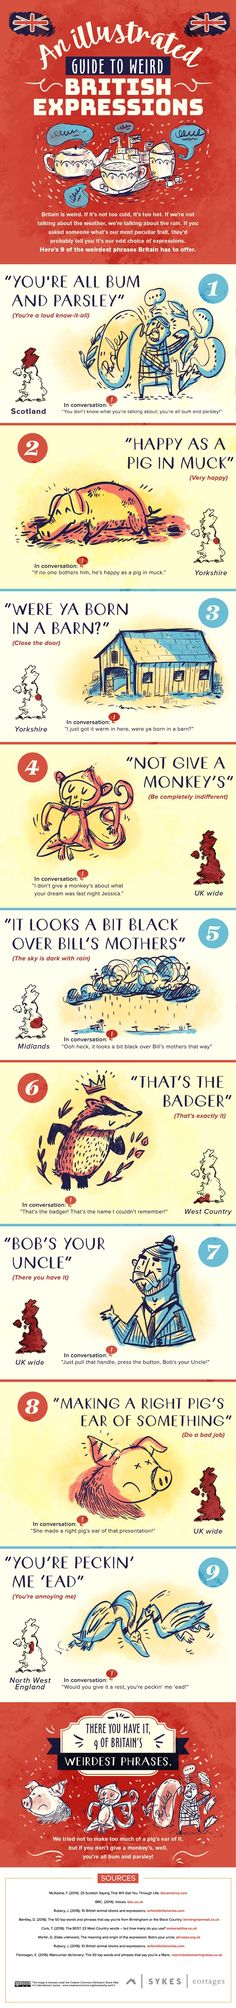 "A beautifully illustrated infographic explaining what phrases like ""You're all bum and parsley"" and ""That's the badger"" mean and how they should be used - in case you didn't think Britain already had enough weird turns of phrase."